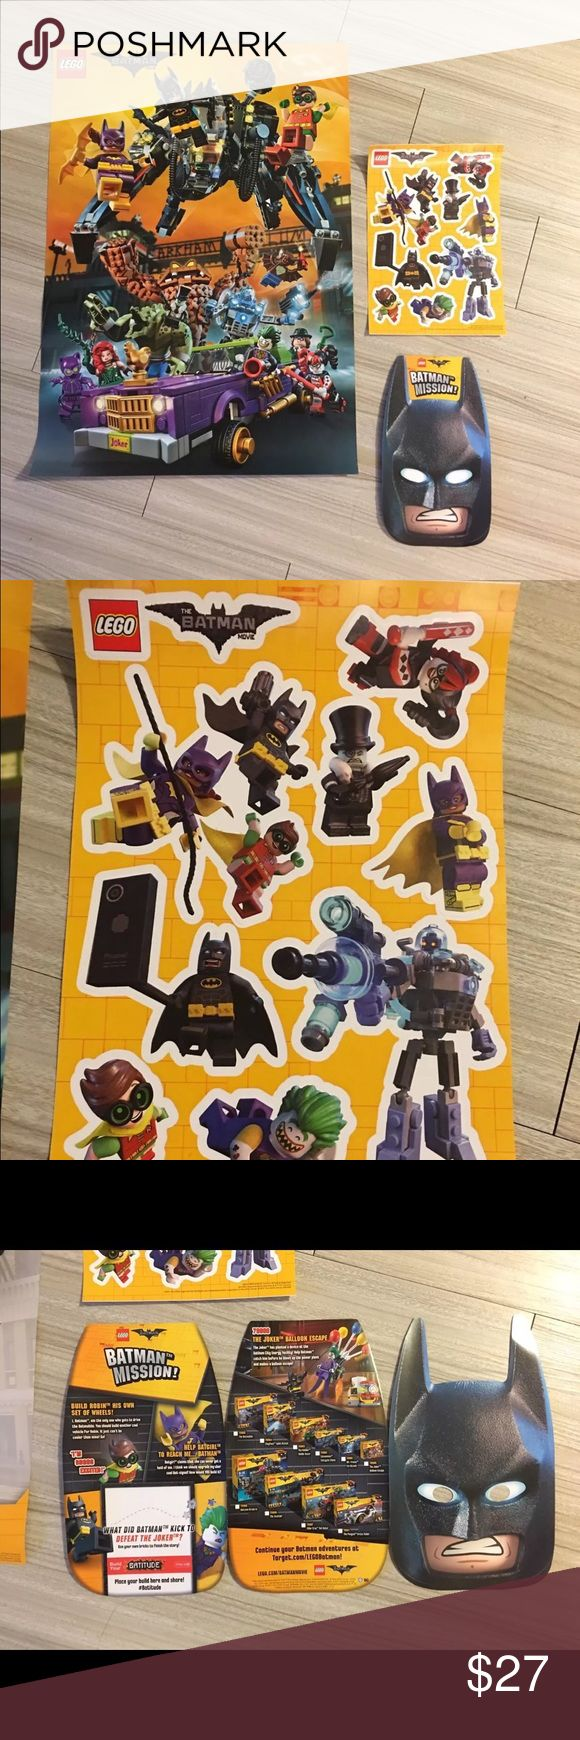 Lego Batman exclusive promotional event for sale is a brand-new three-piece promotional set from the Lego Batman movie.   On 2/18/17 Target stores nationwide did an event, go into the store for a scavenger hunt about the Lego Batman movie. Upon completion of the hunt, you had a chance to receive these cool, lego batman movie exclusive items!! while supplies last.  In this listing you will receive a double sided poster, one sheet of stickers, and the flyer that target handed out.  The item…